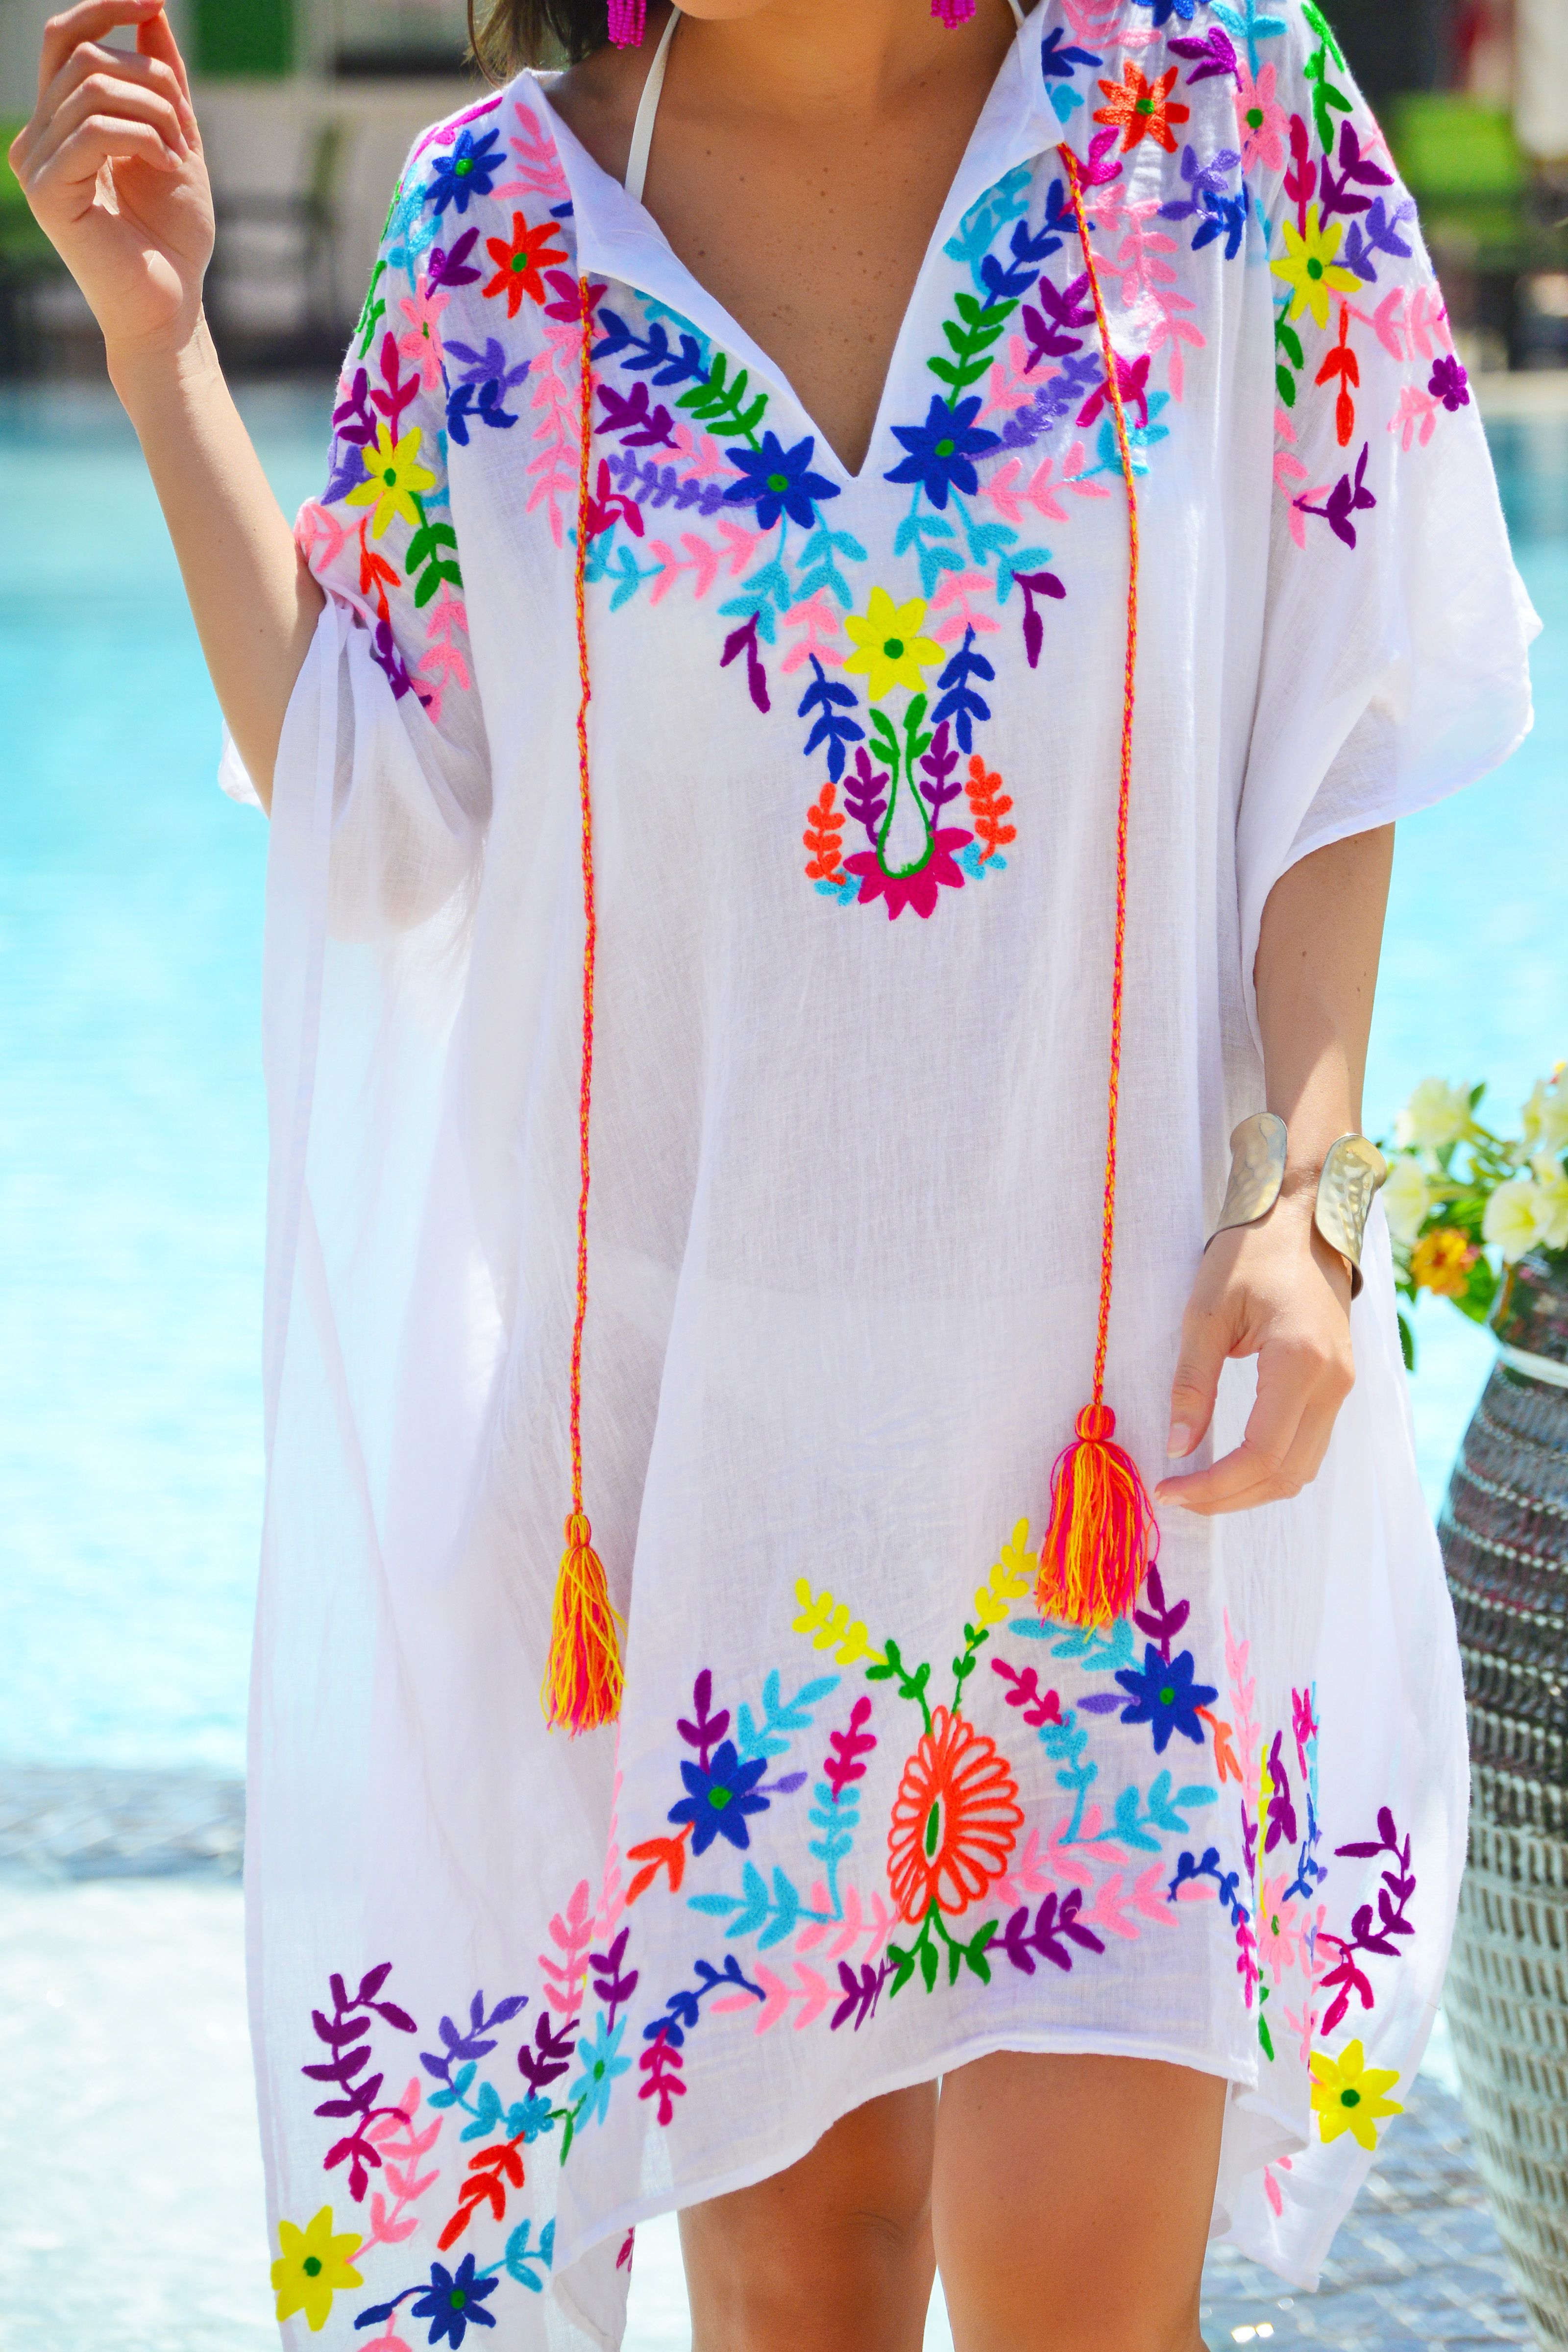 You'll be the envy of all around when you step out in this cute as can be kaftan! It boasts the prettiest, bright embroidery and is topped off by colorful tassel ties. Rock it over your swimsuit or over a slip. Fabric is a lightweight 100% cotton.